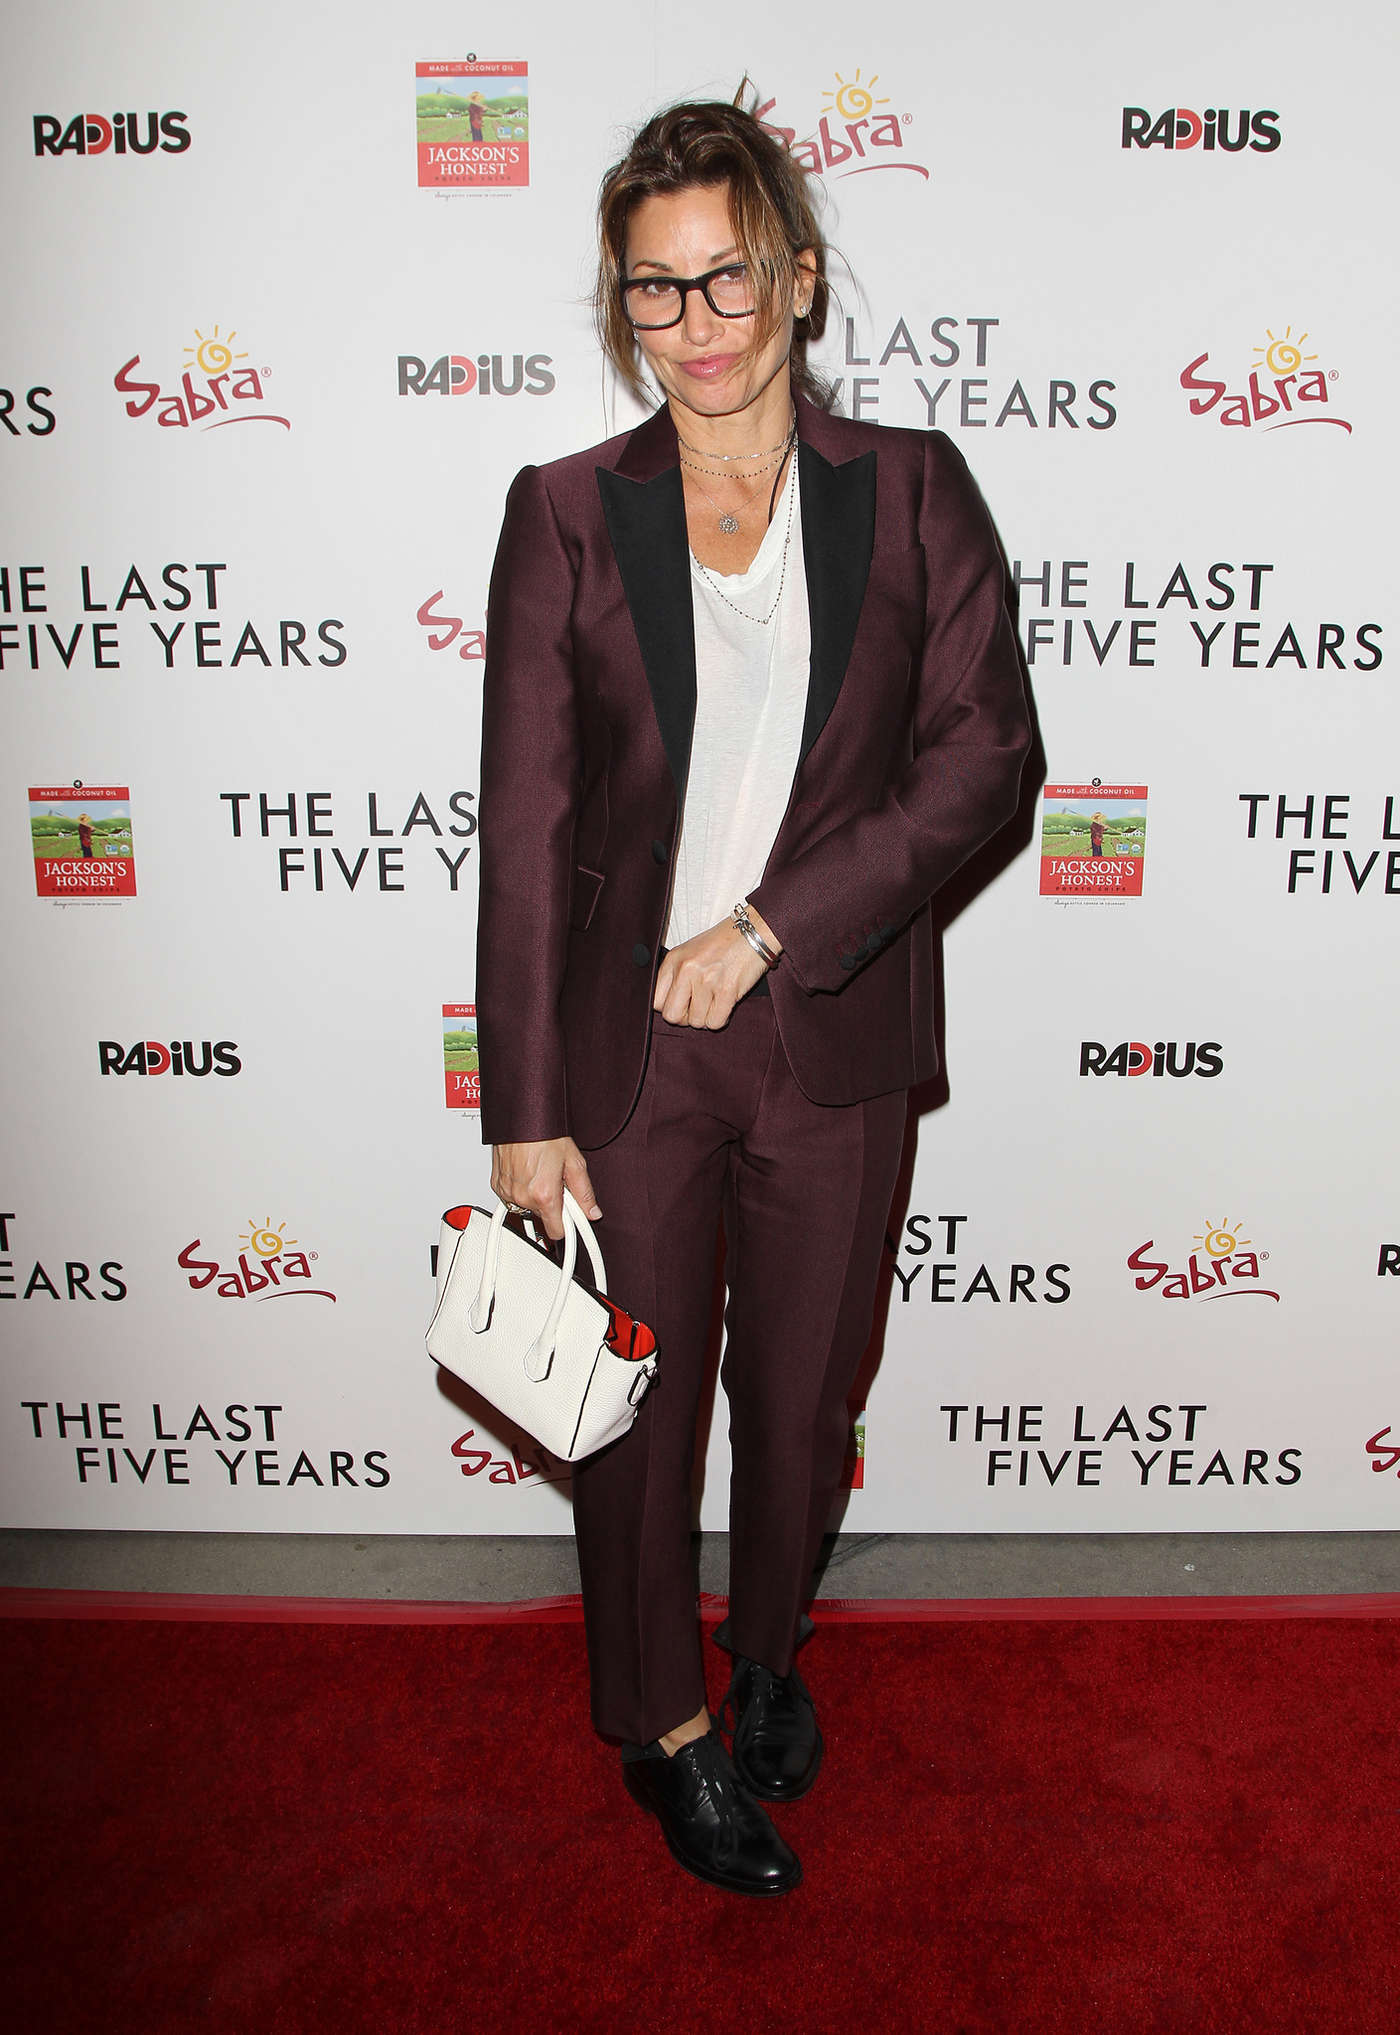 Gina Gershon The Last Five Years Premiere in Los Angeles